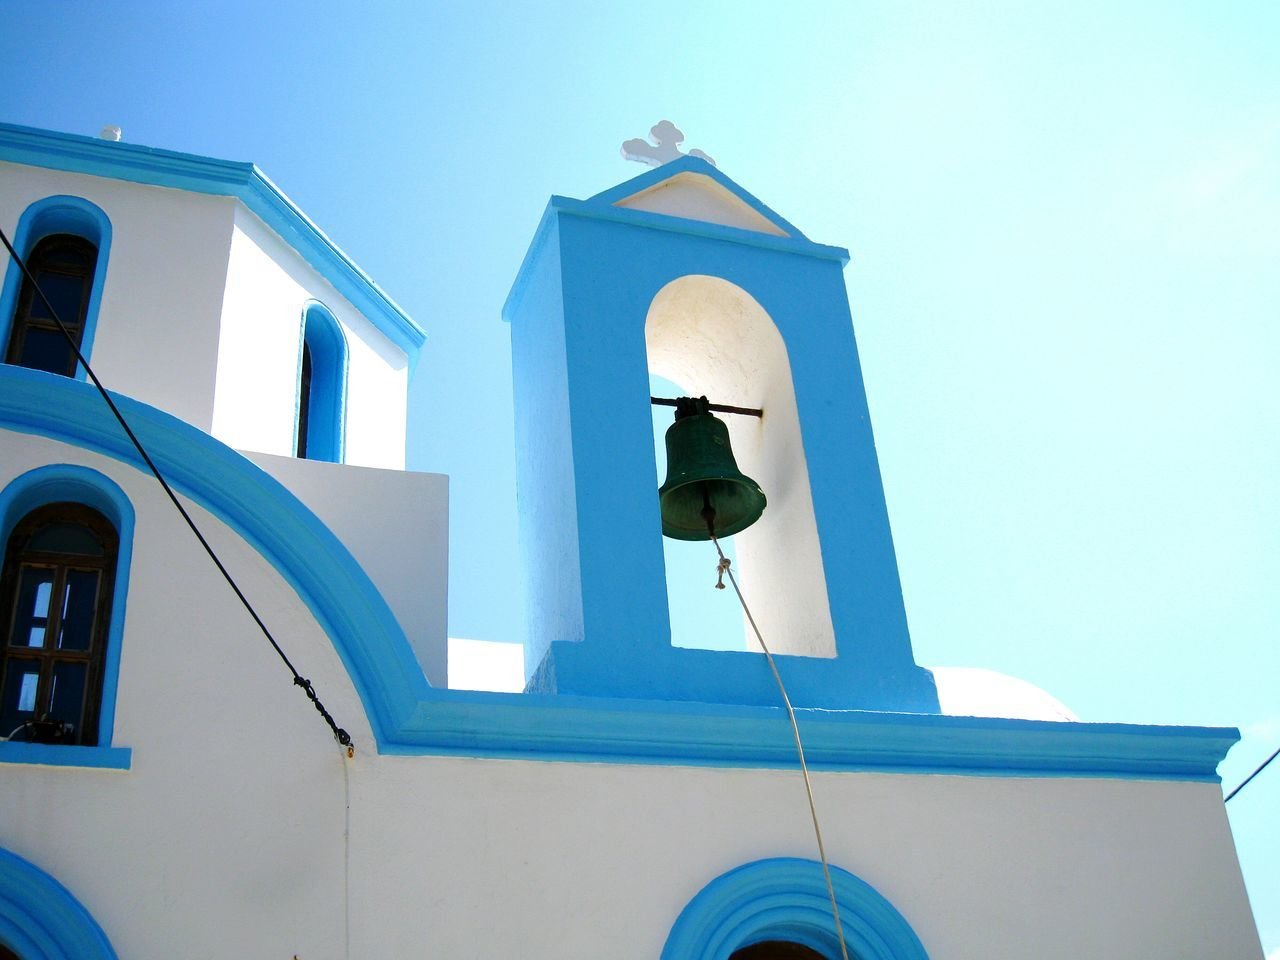 PIECE OF HEAVEN... ⛅ Greece Taking Photos Getting Inspired Hello World White Lookingup Cityscapes City Sky Skyporn Blue Blue Sky Outdoors Walking Around Freshness Fresh Architecture Architecture_collection Light Built Structure Building Building Exterior Getting In Shape Tourism Colors